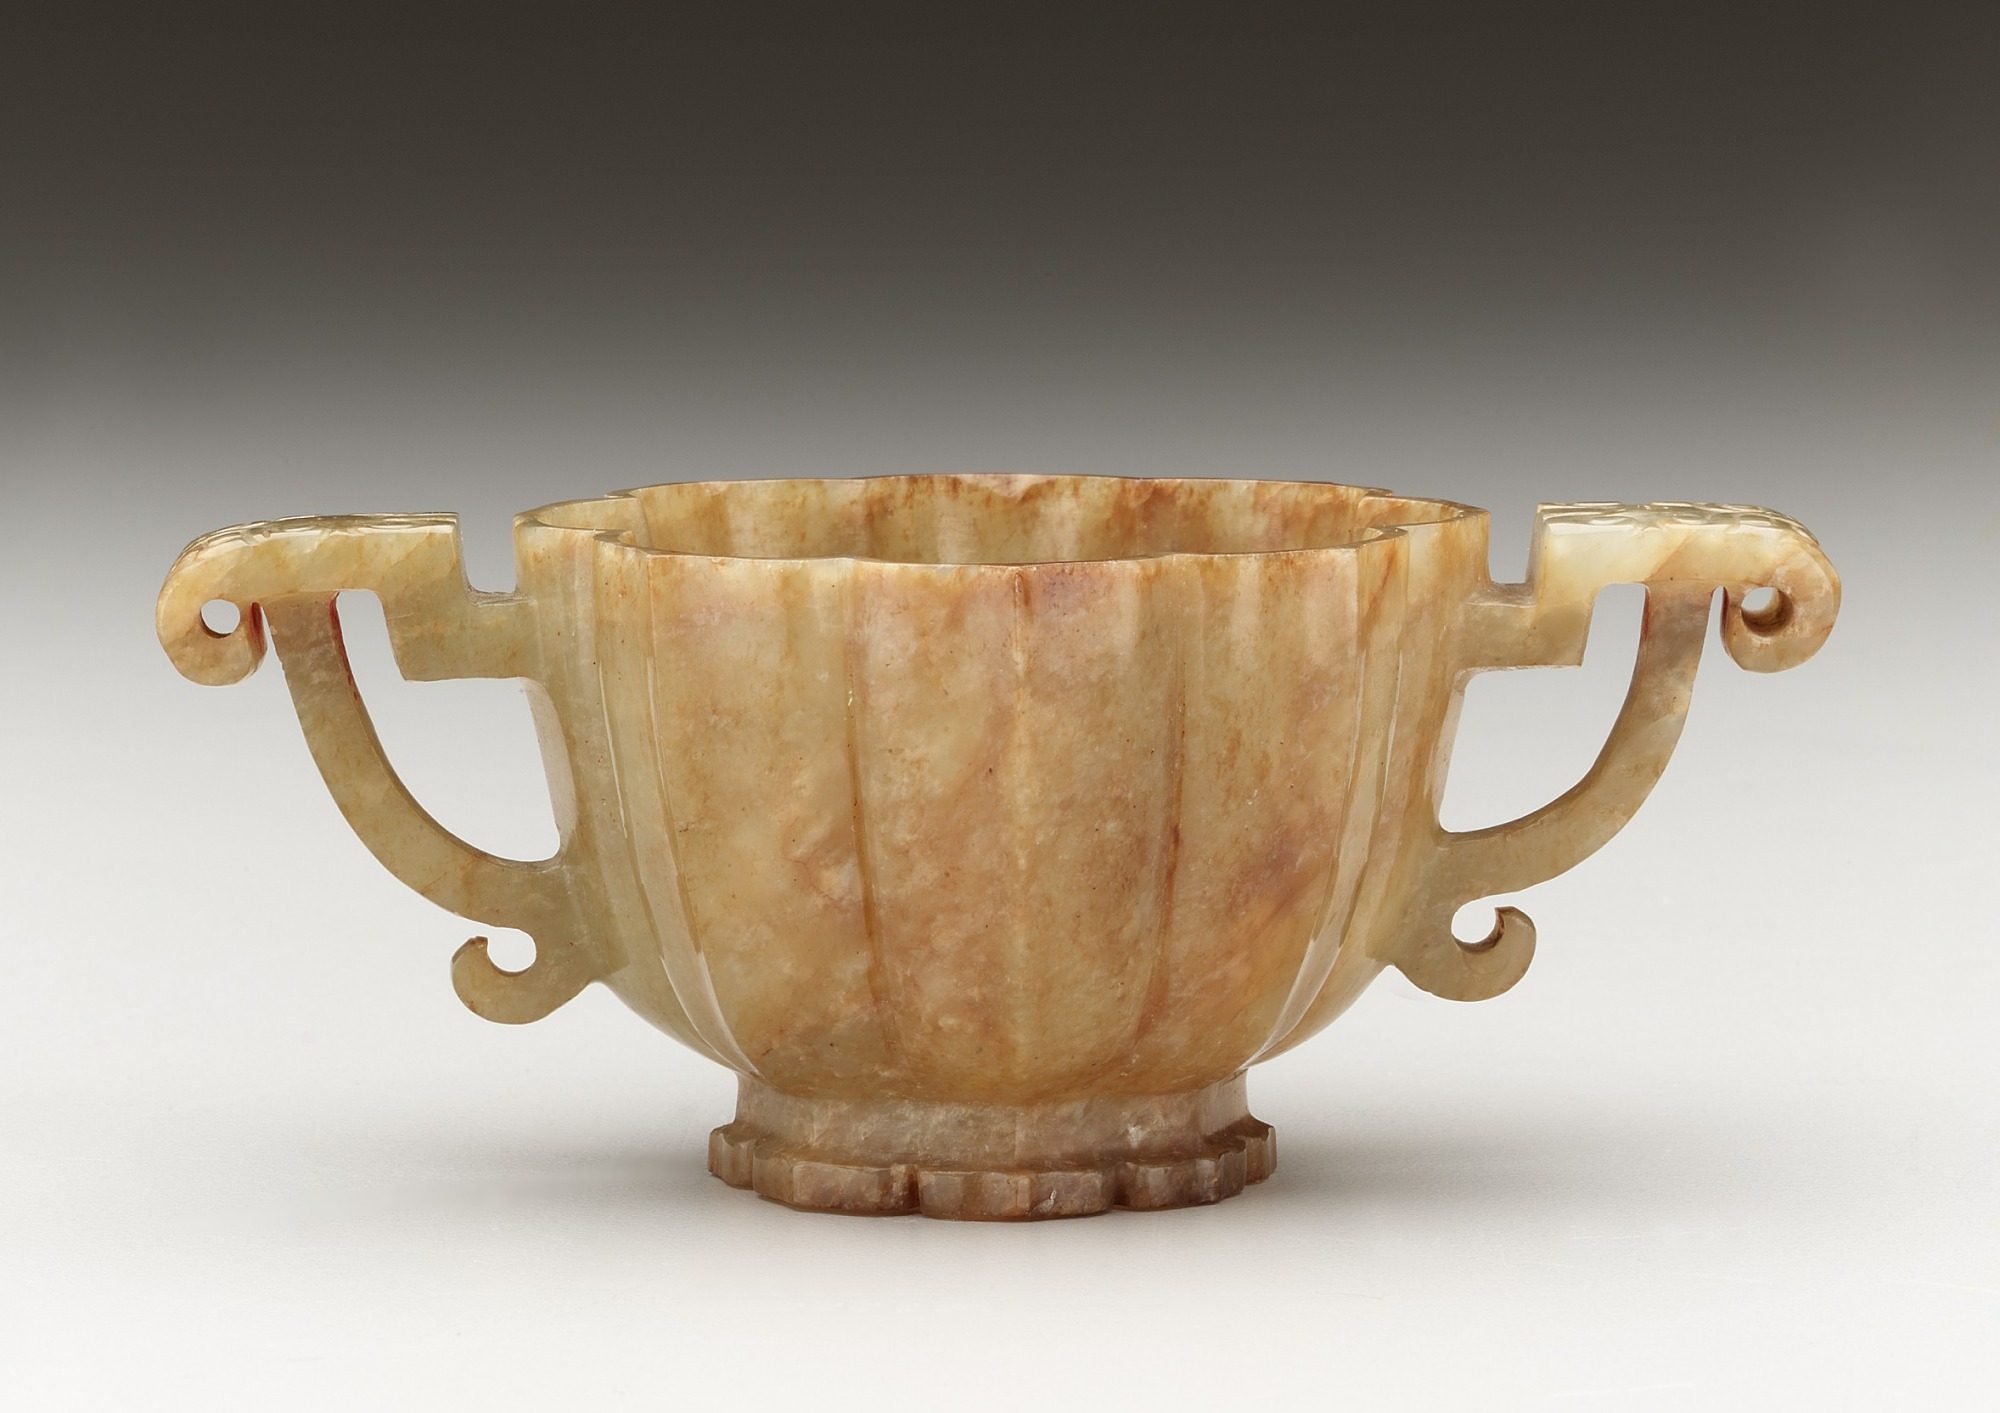 profile: Handled cup